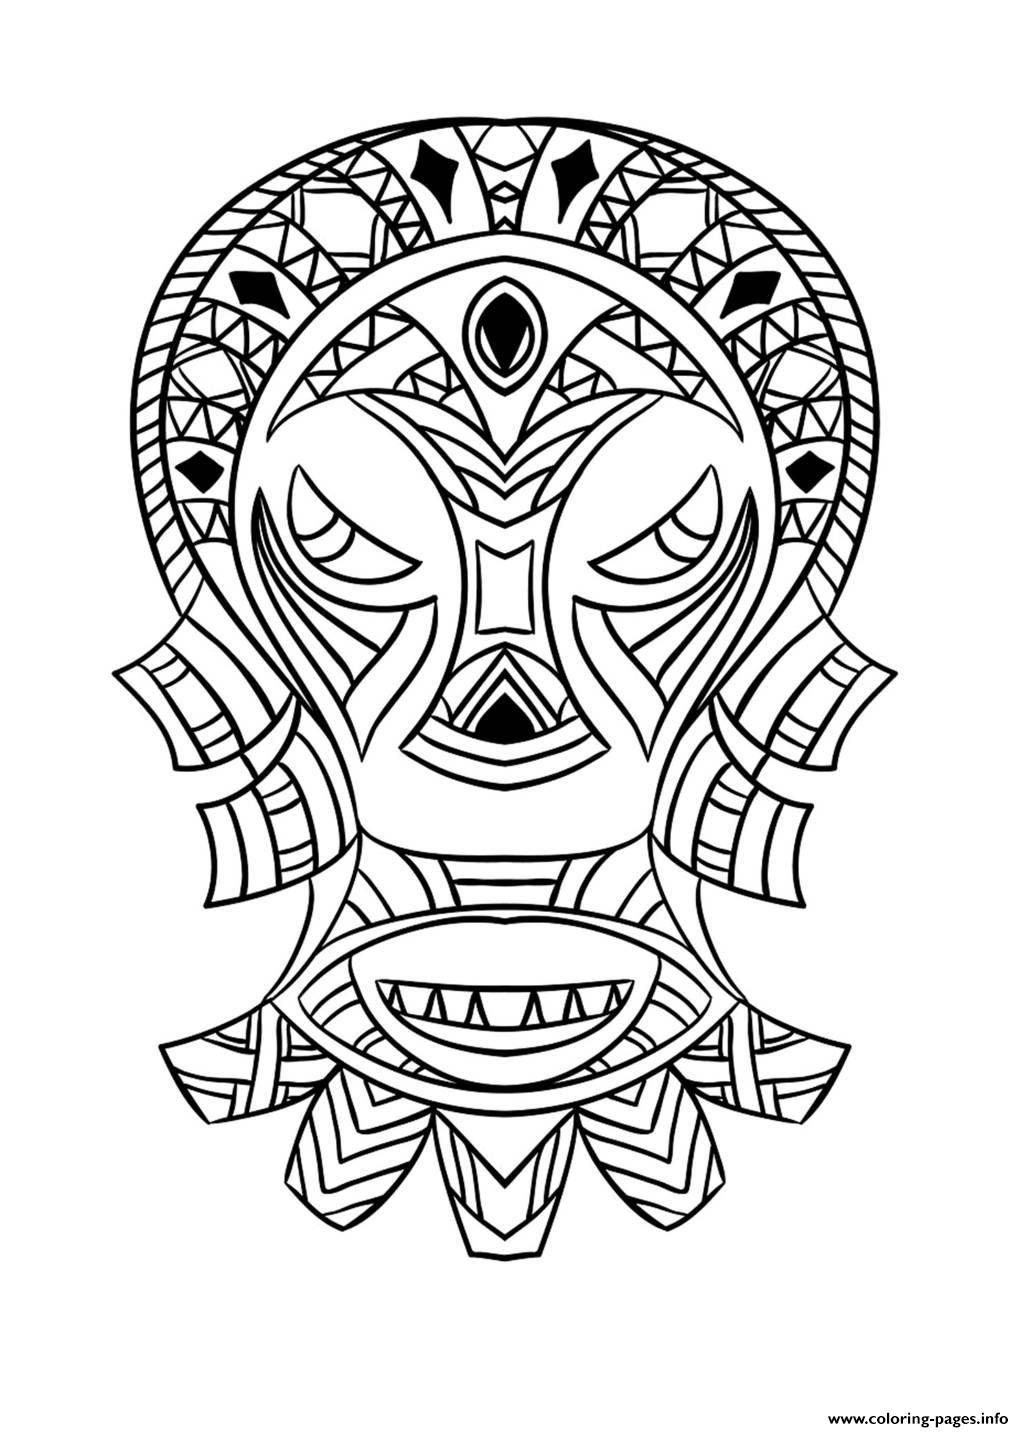 African Mask Drawing at GetDrawings.com | Free for personal use ...